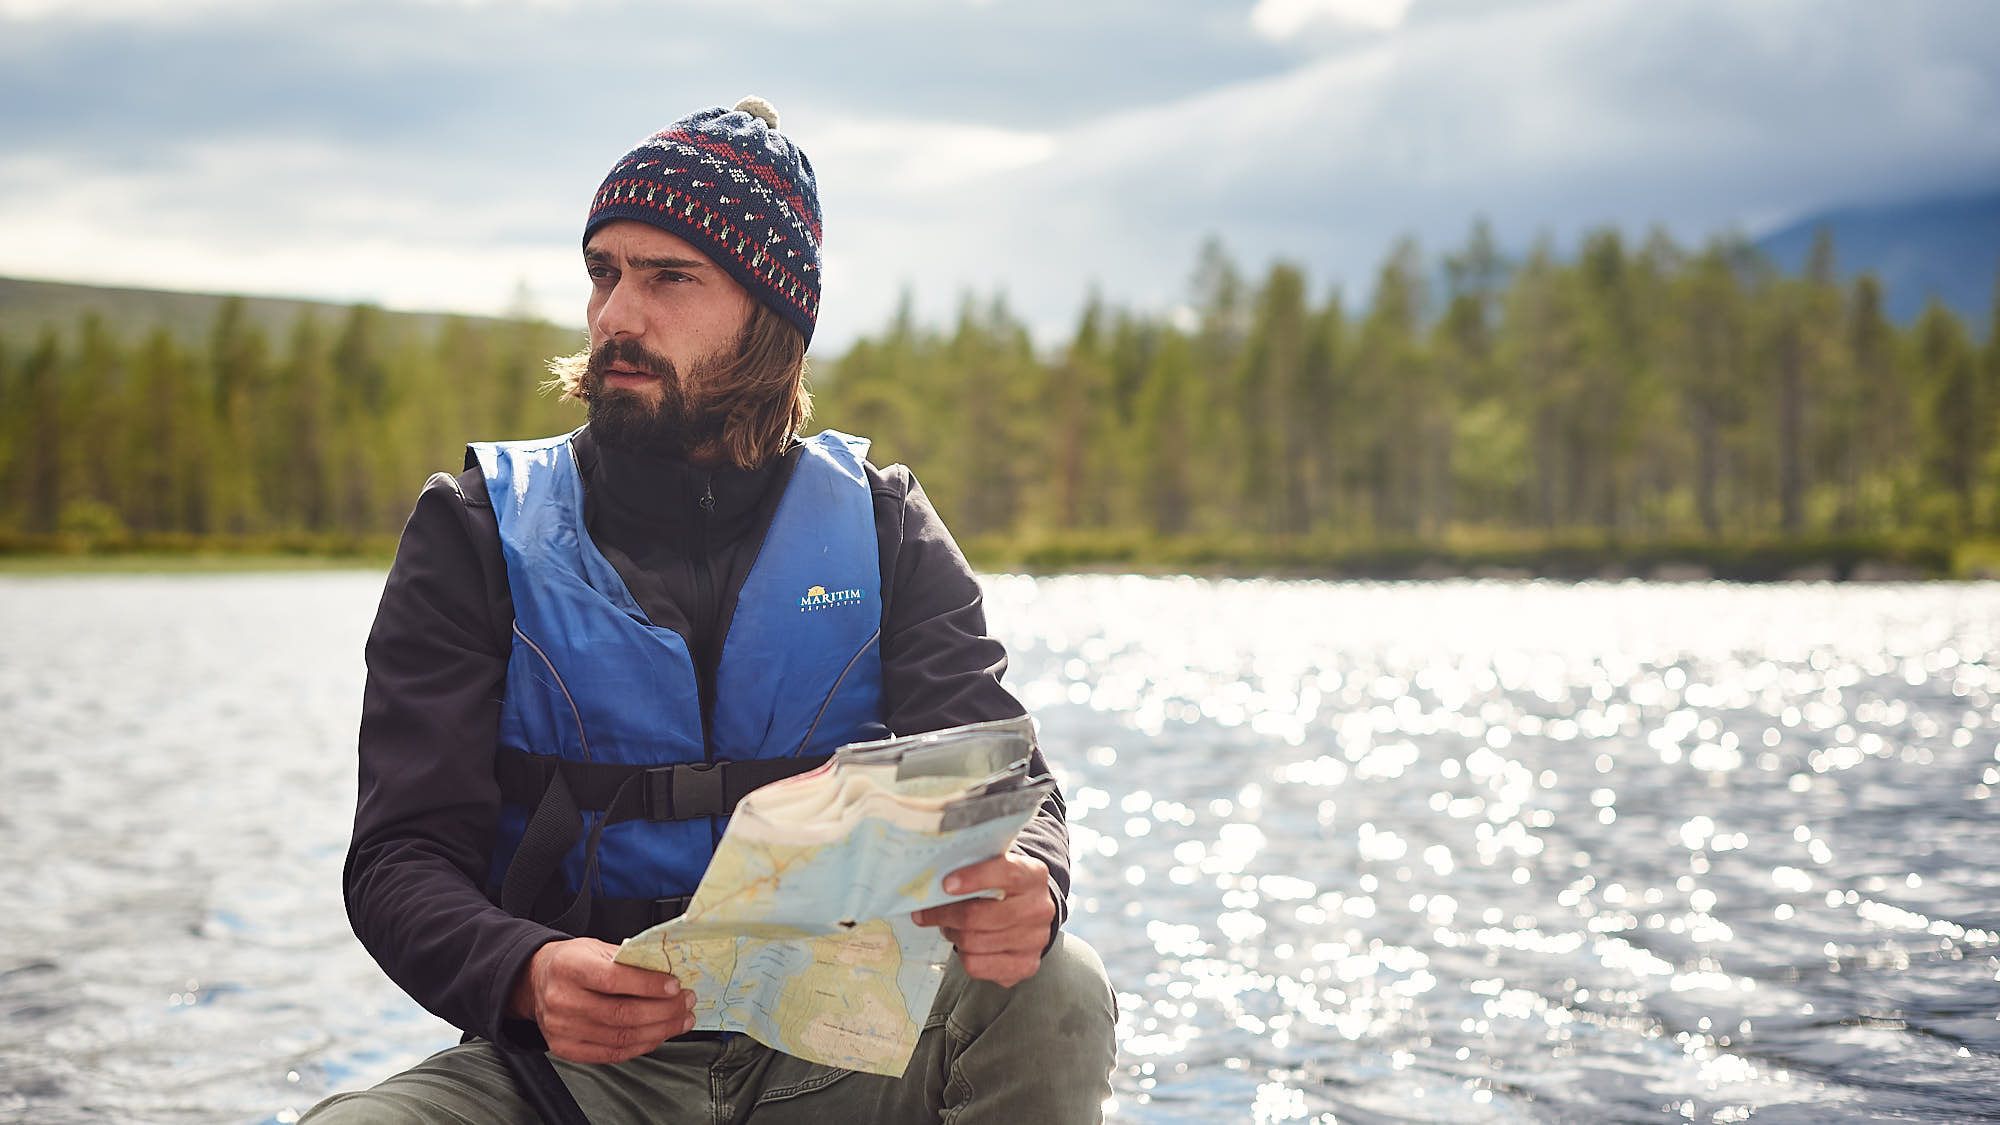 Bearded man reading a map in a canoe on a lake in Norway